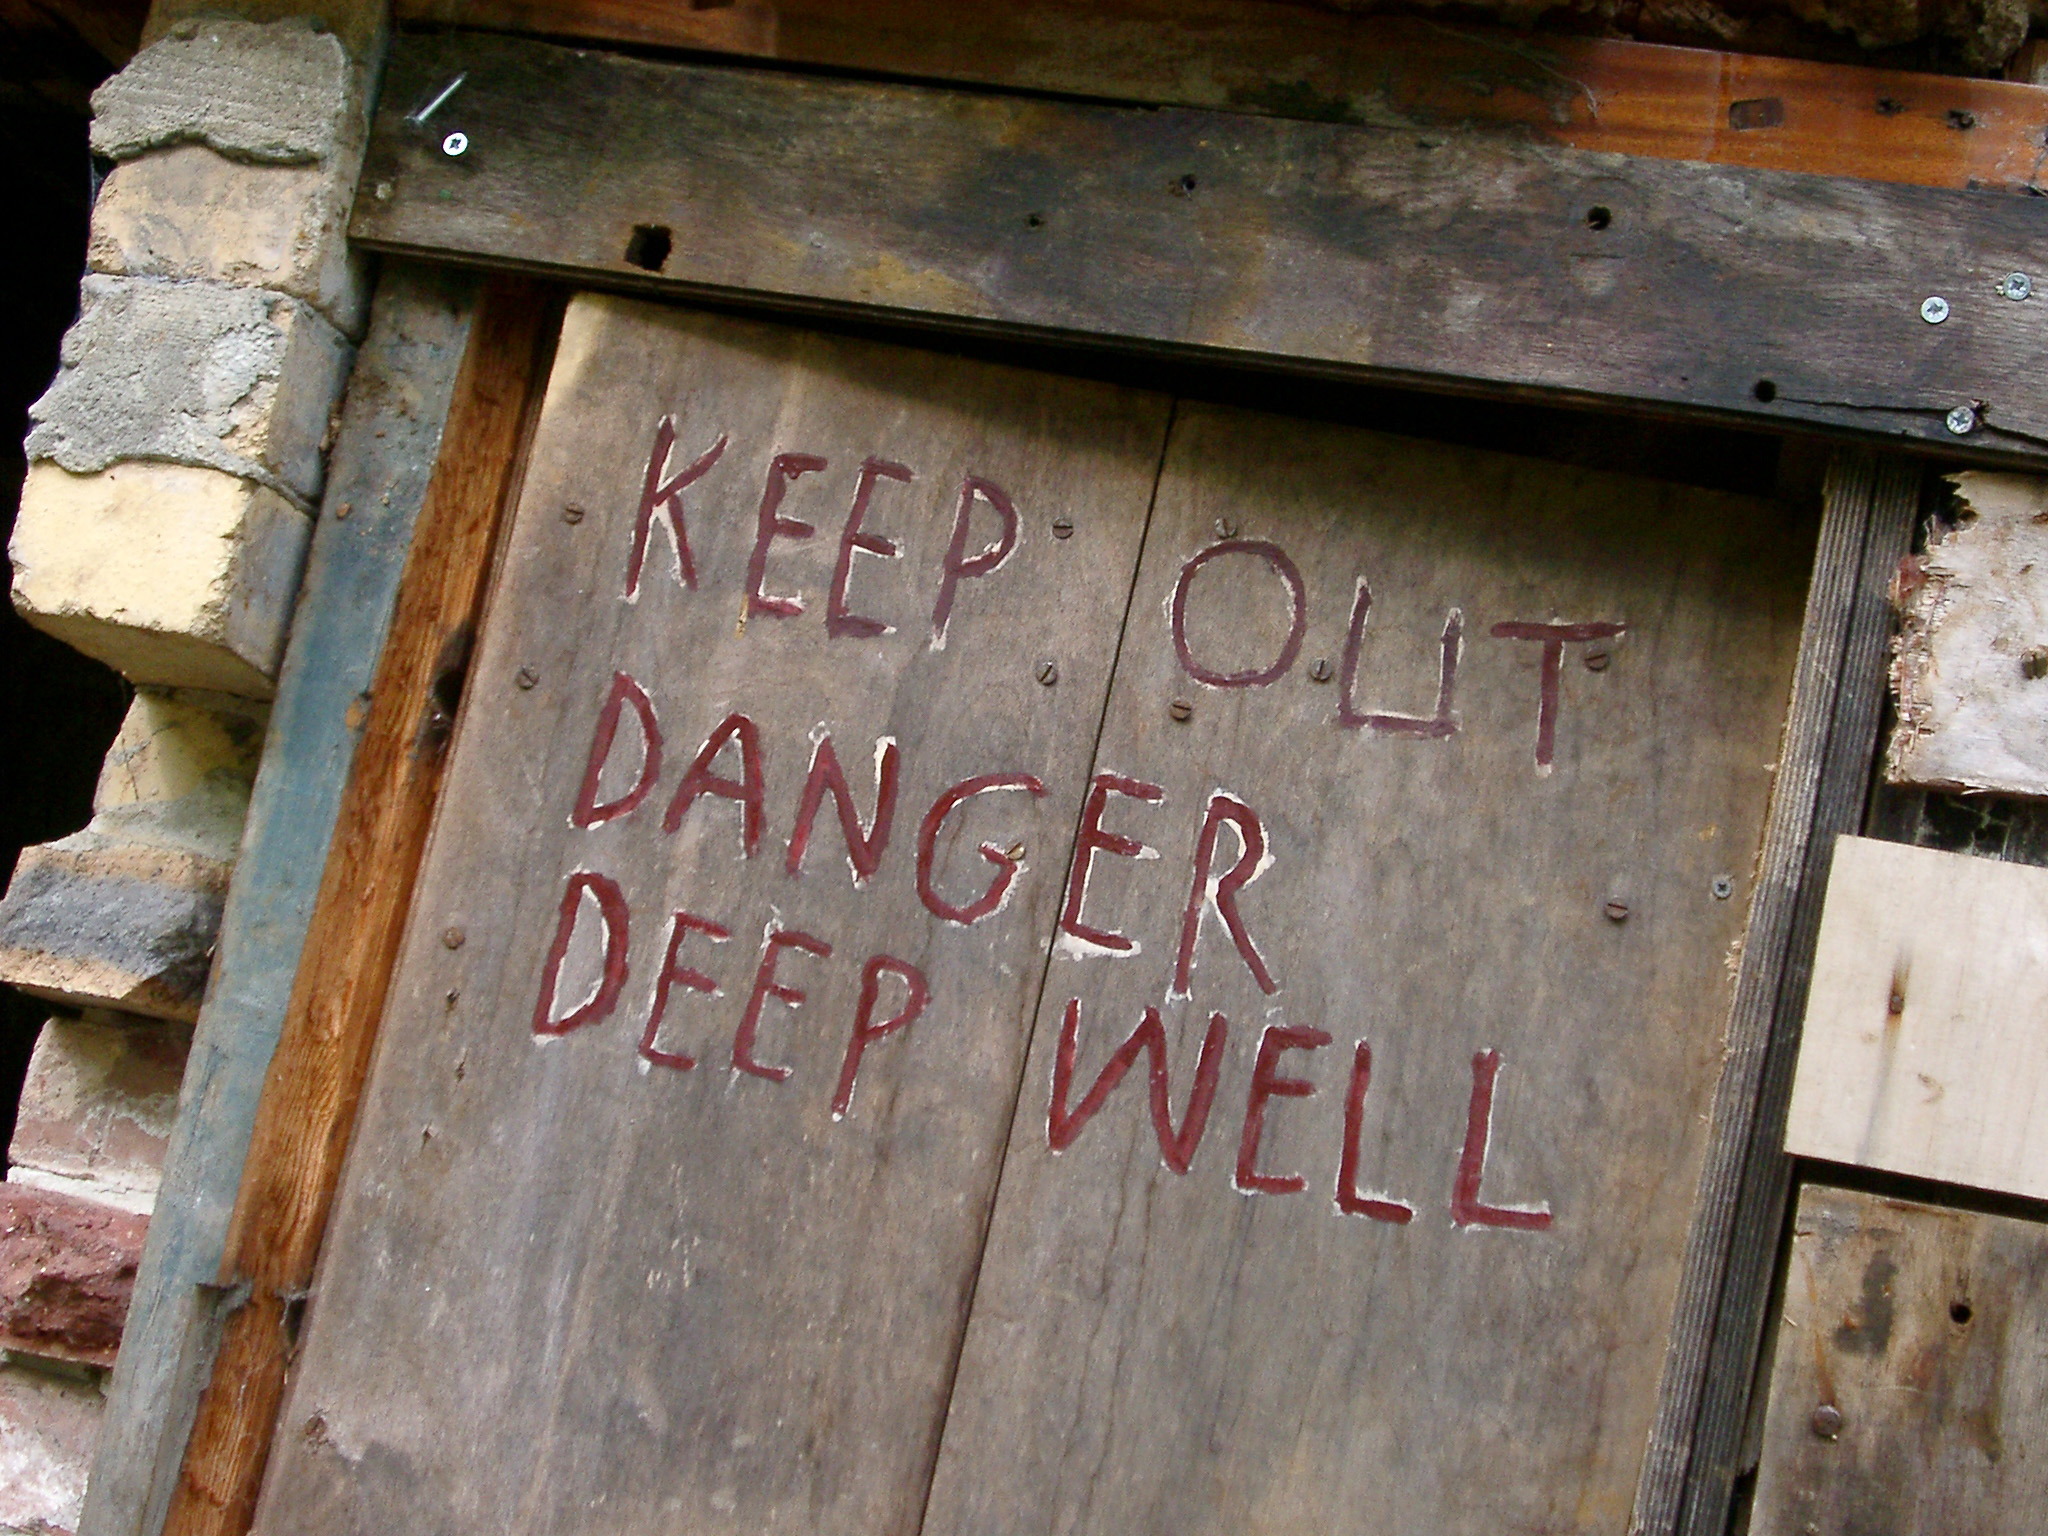 Closed up mine entrance with a wooden door and the warning - Keep out, danger deep well - painted on the exterior